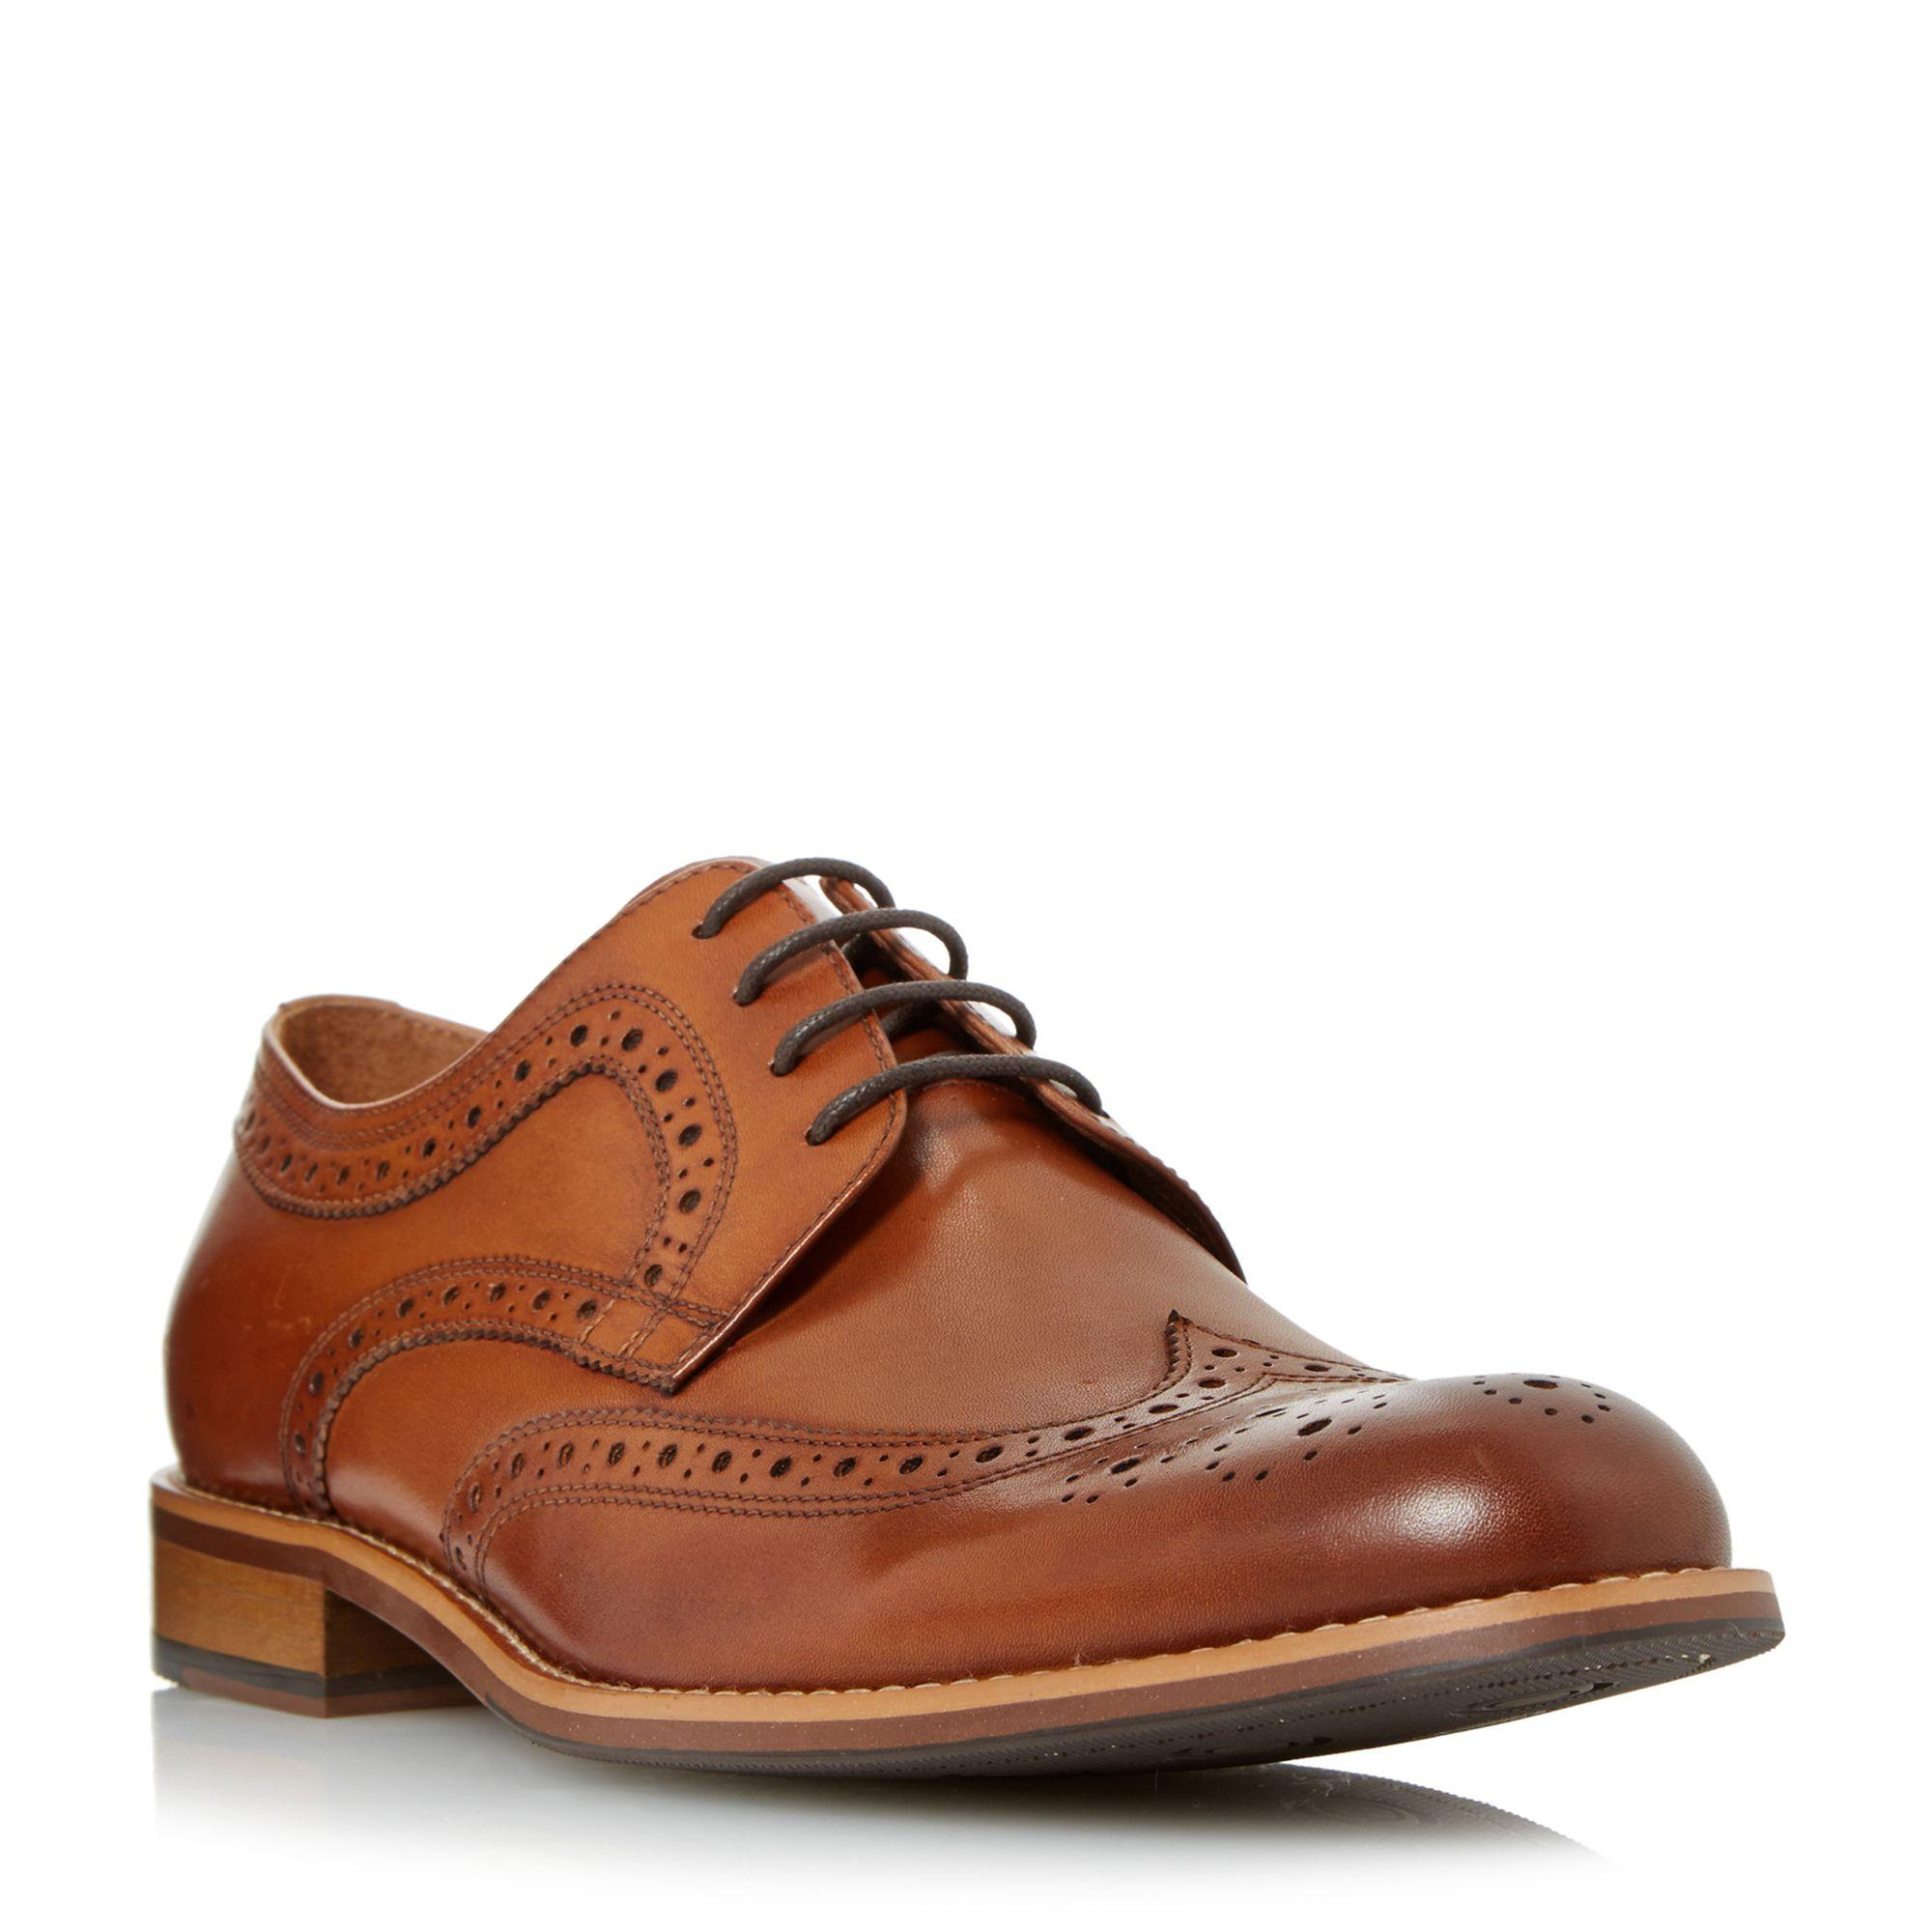 Dune Mens Shoes Sale Uk